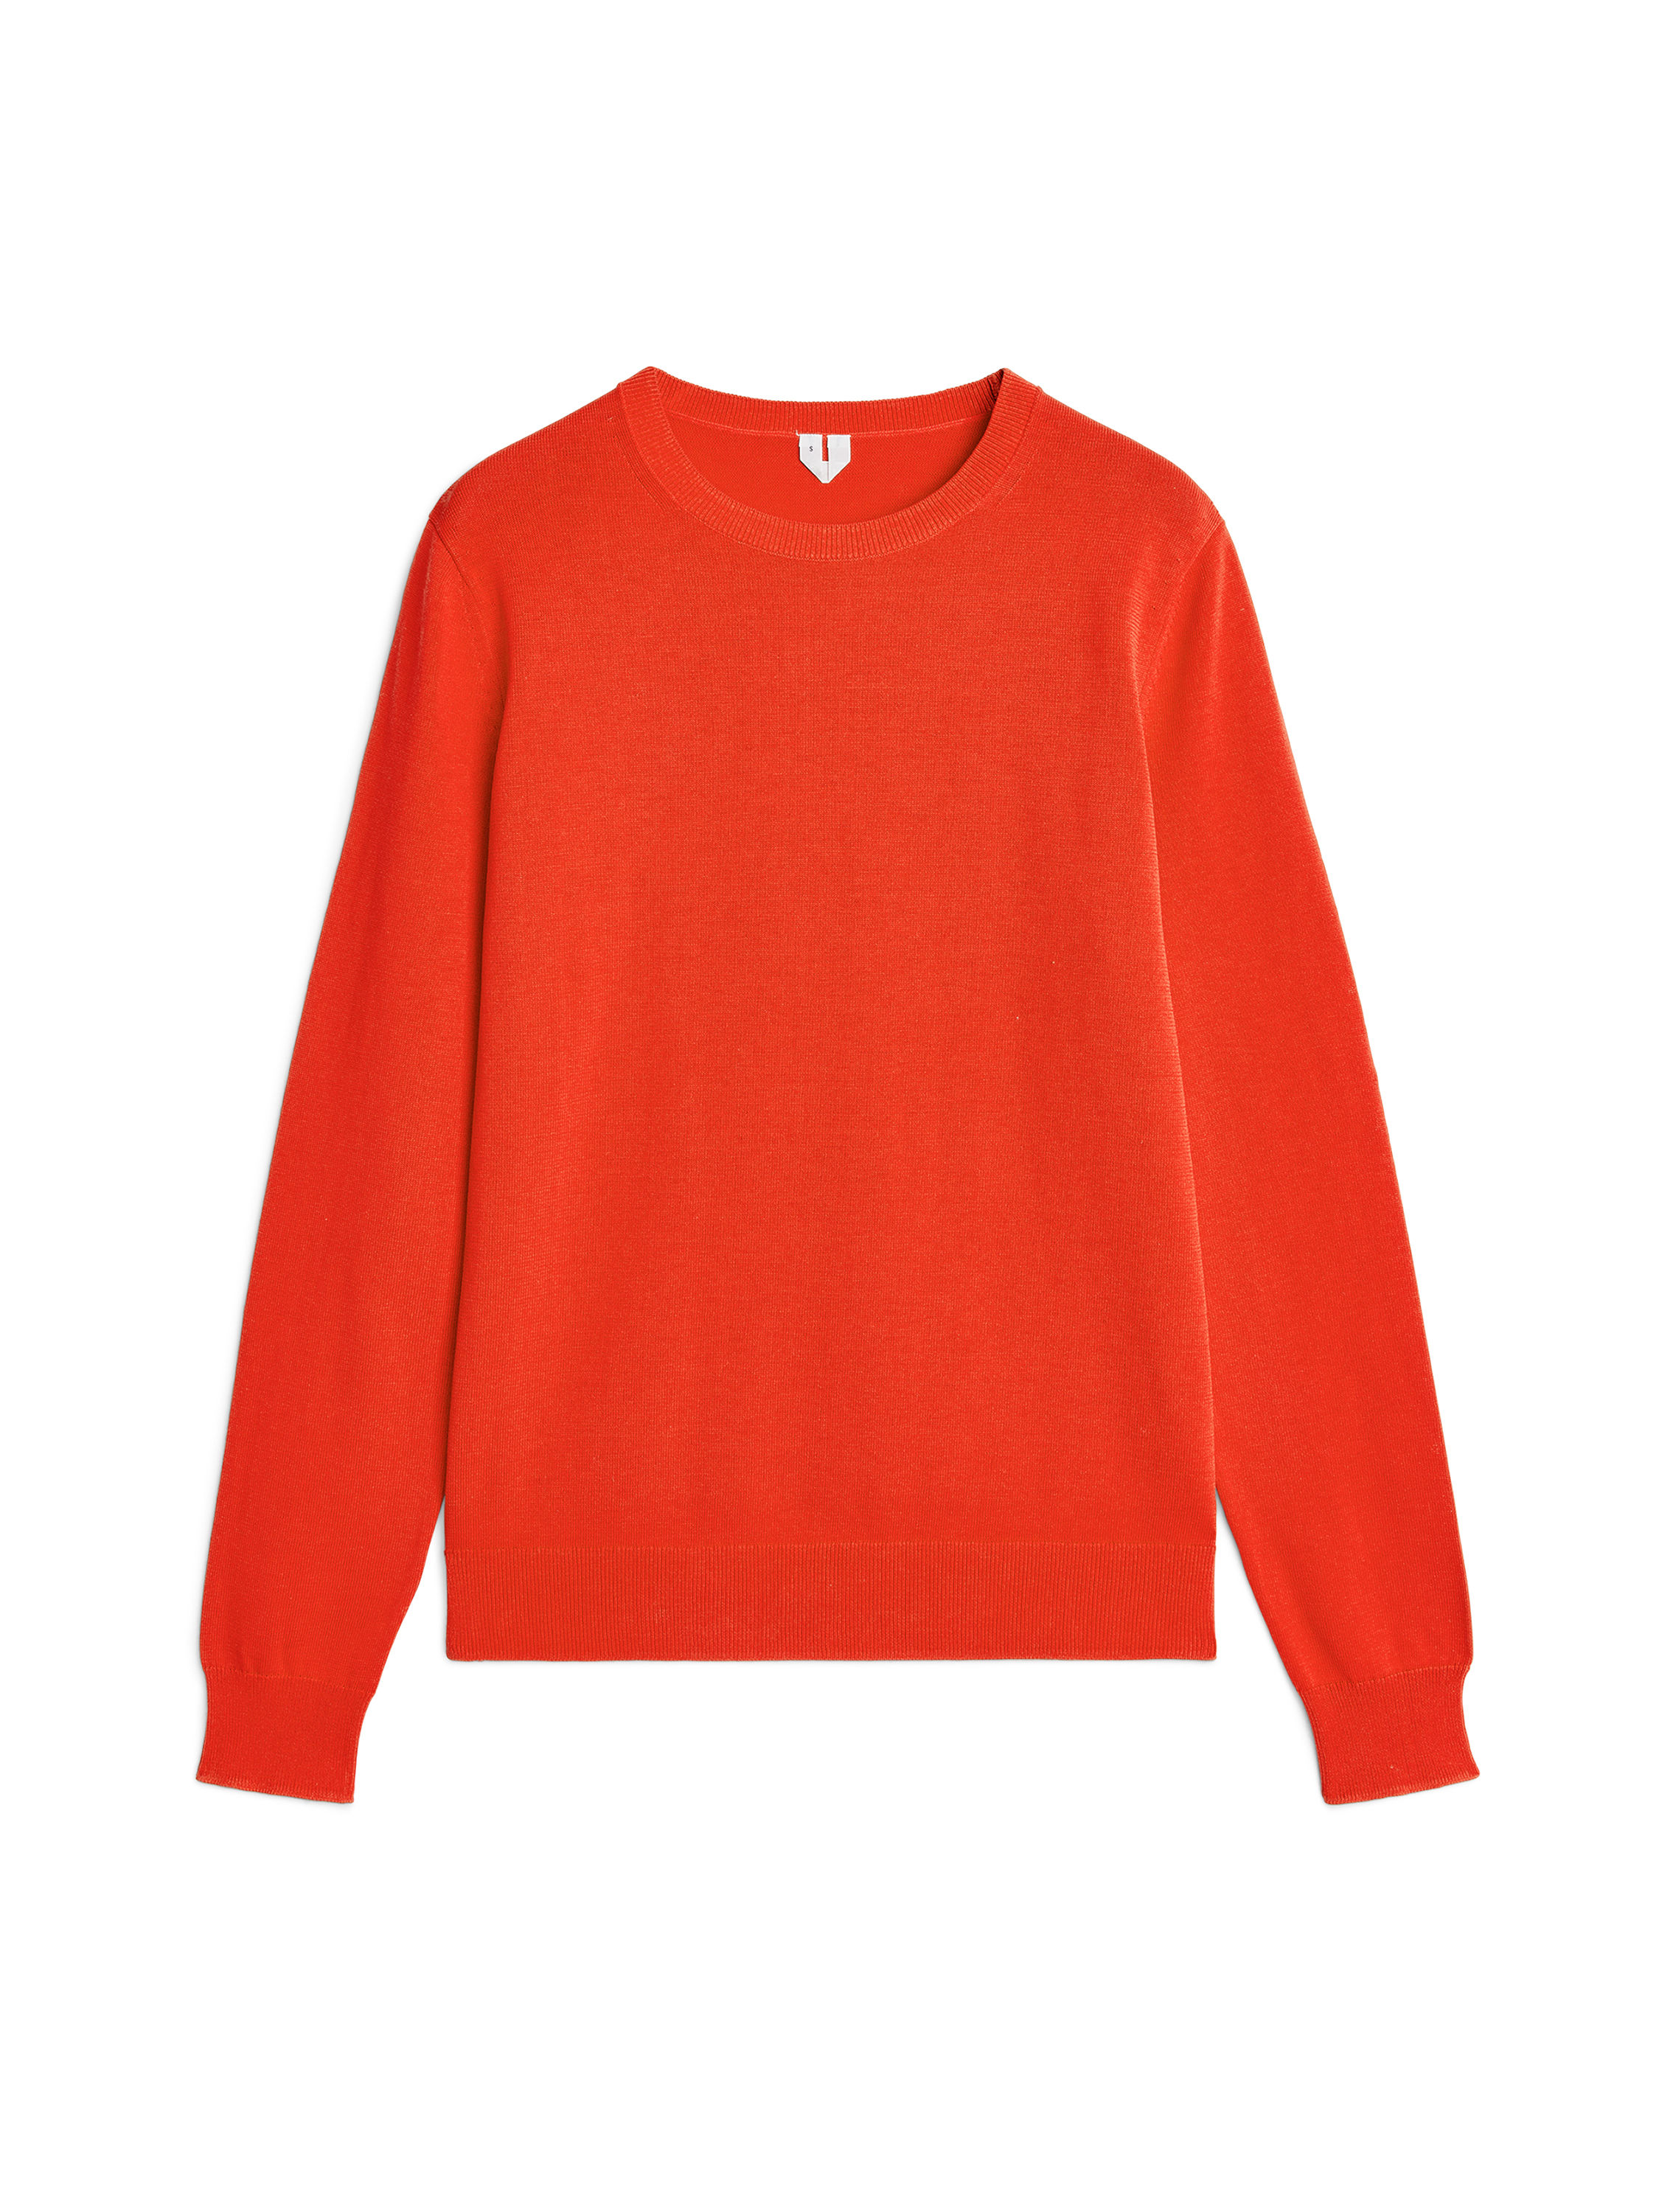 Fabric Swatch image of Arket pima cotton crew-neck jumper in orange